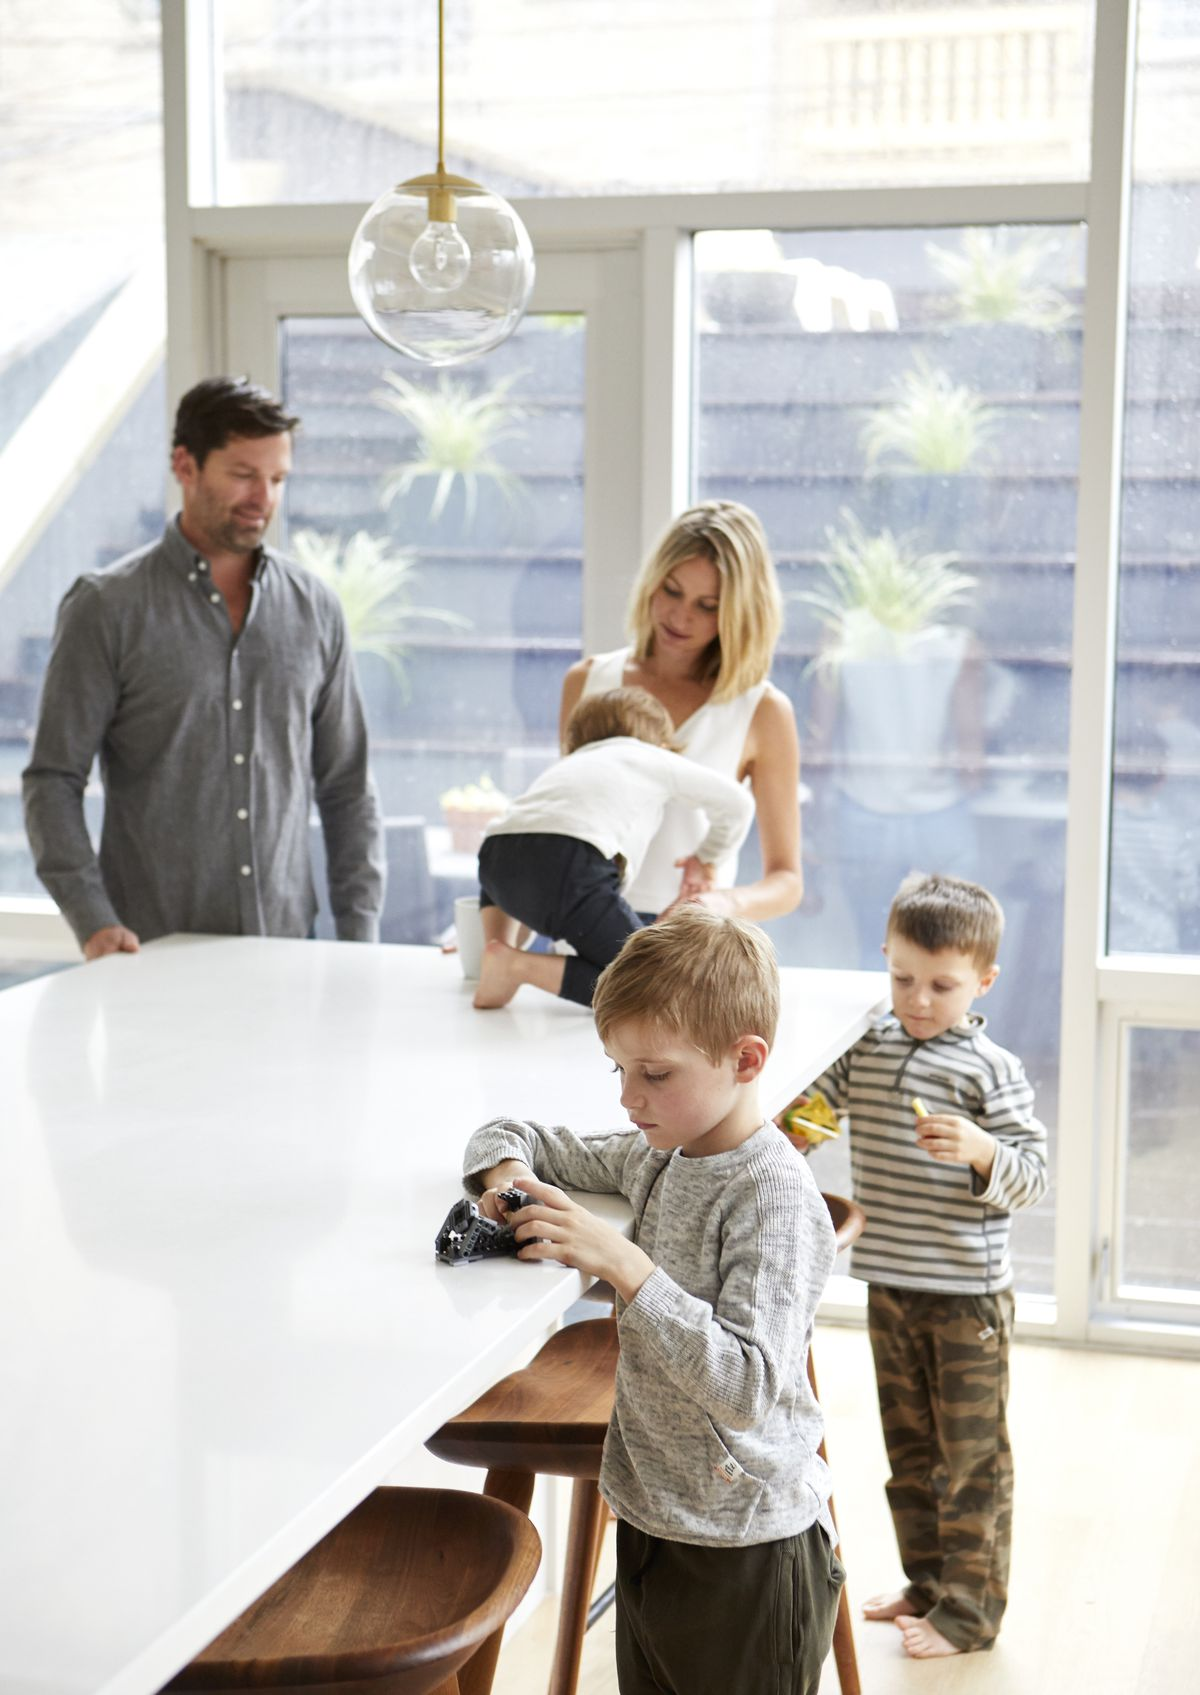 The couple and their kids pose in the white kitchen.